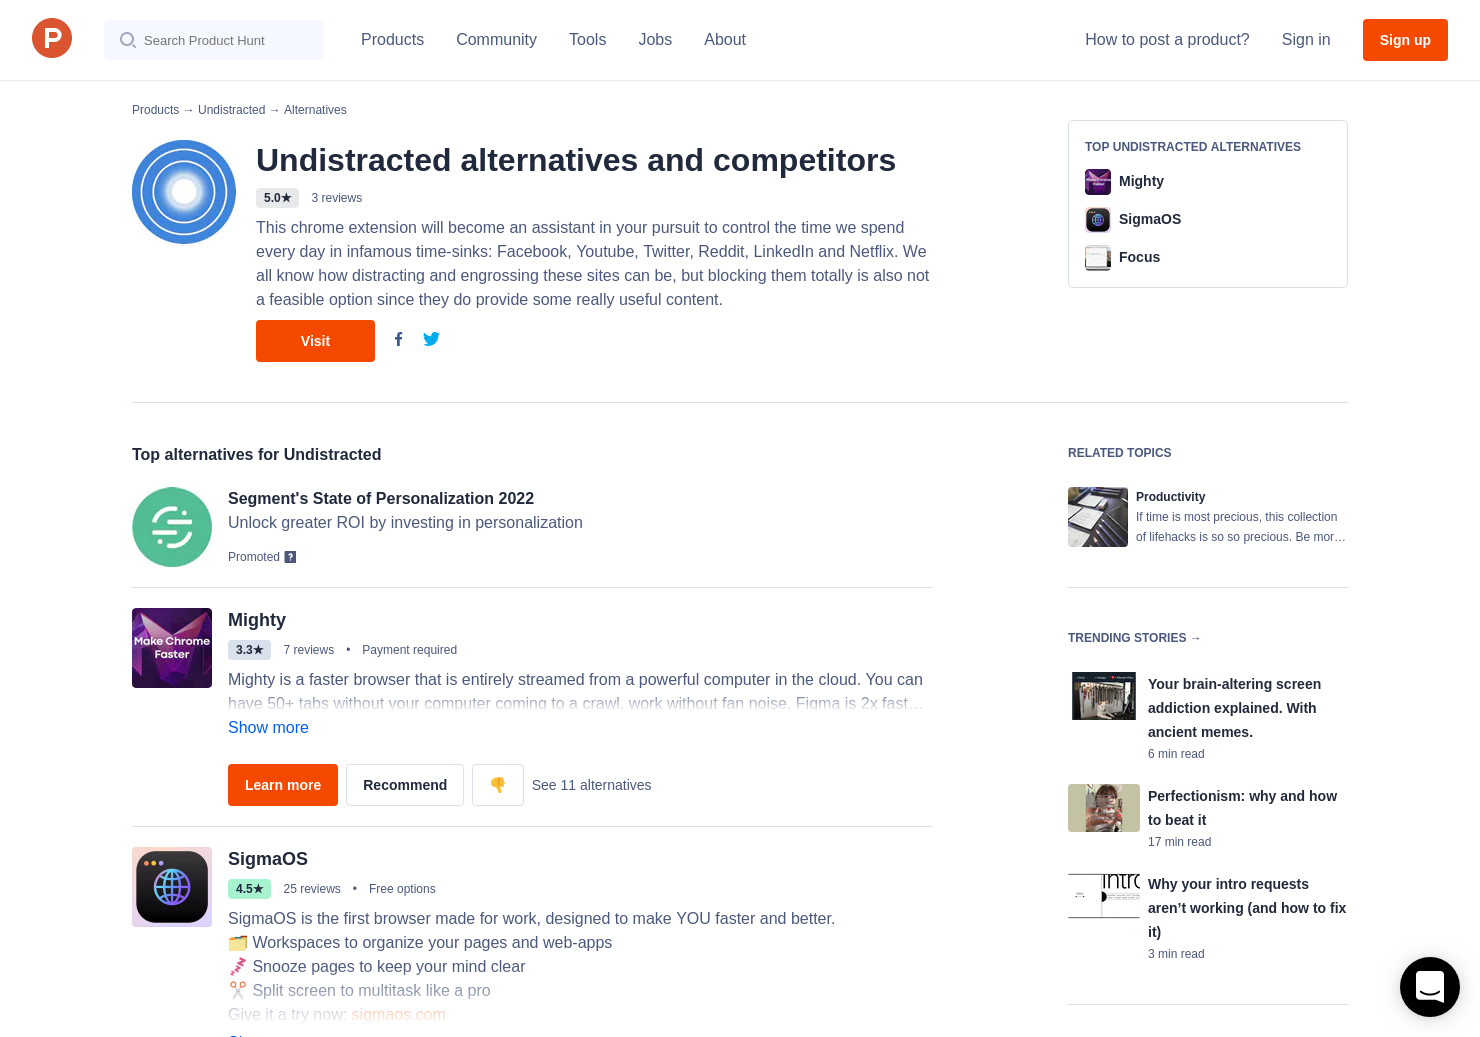 13 Alternatives to UnDistracted | Product Hunt